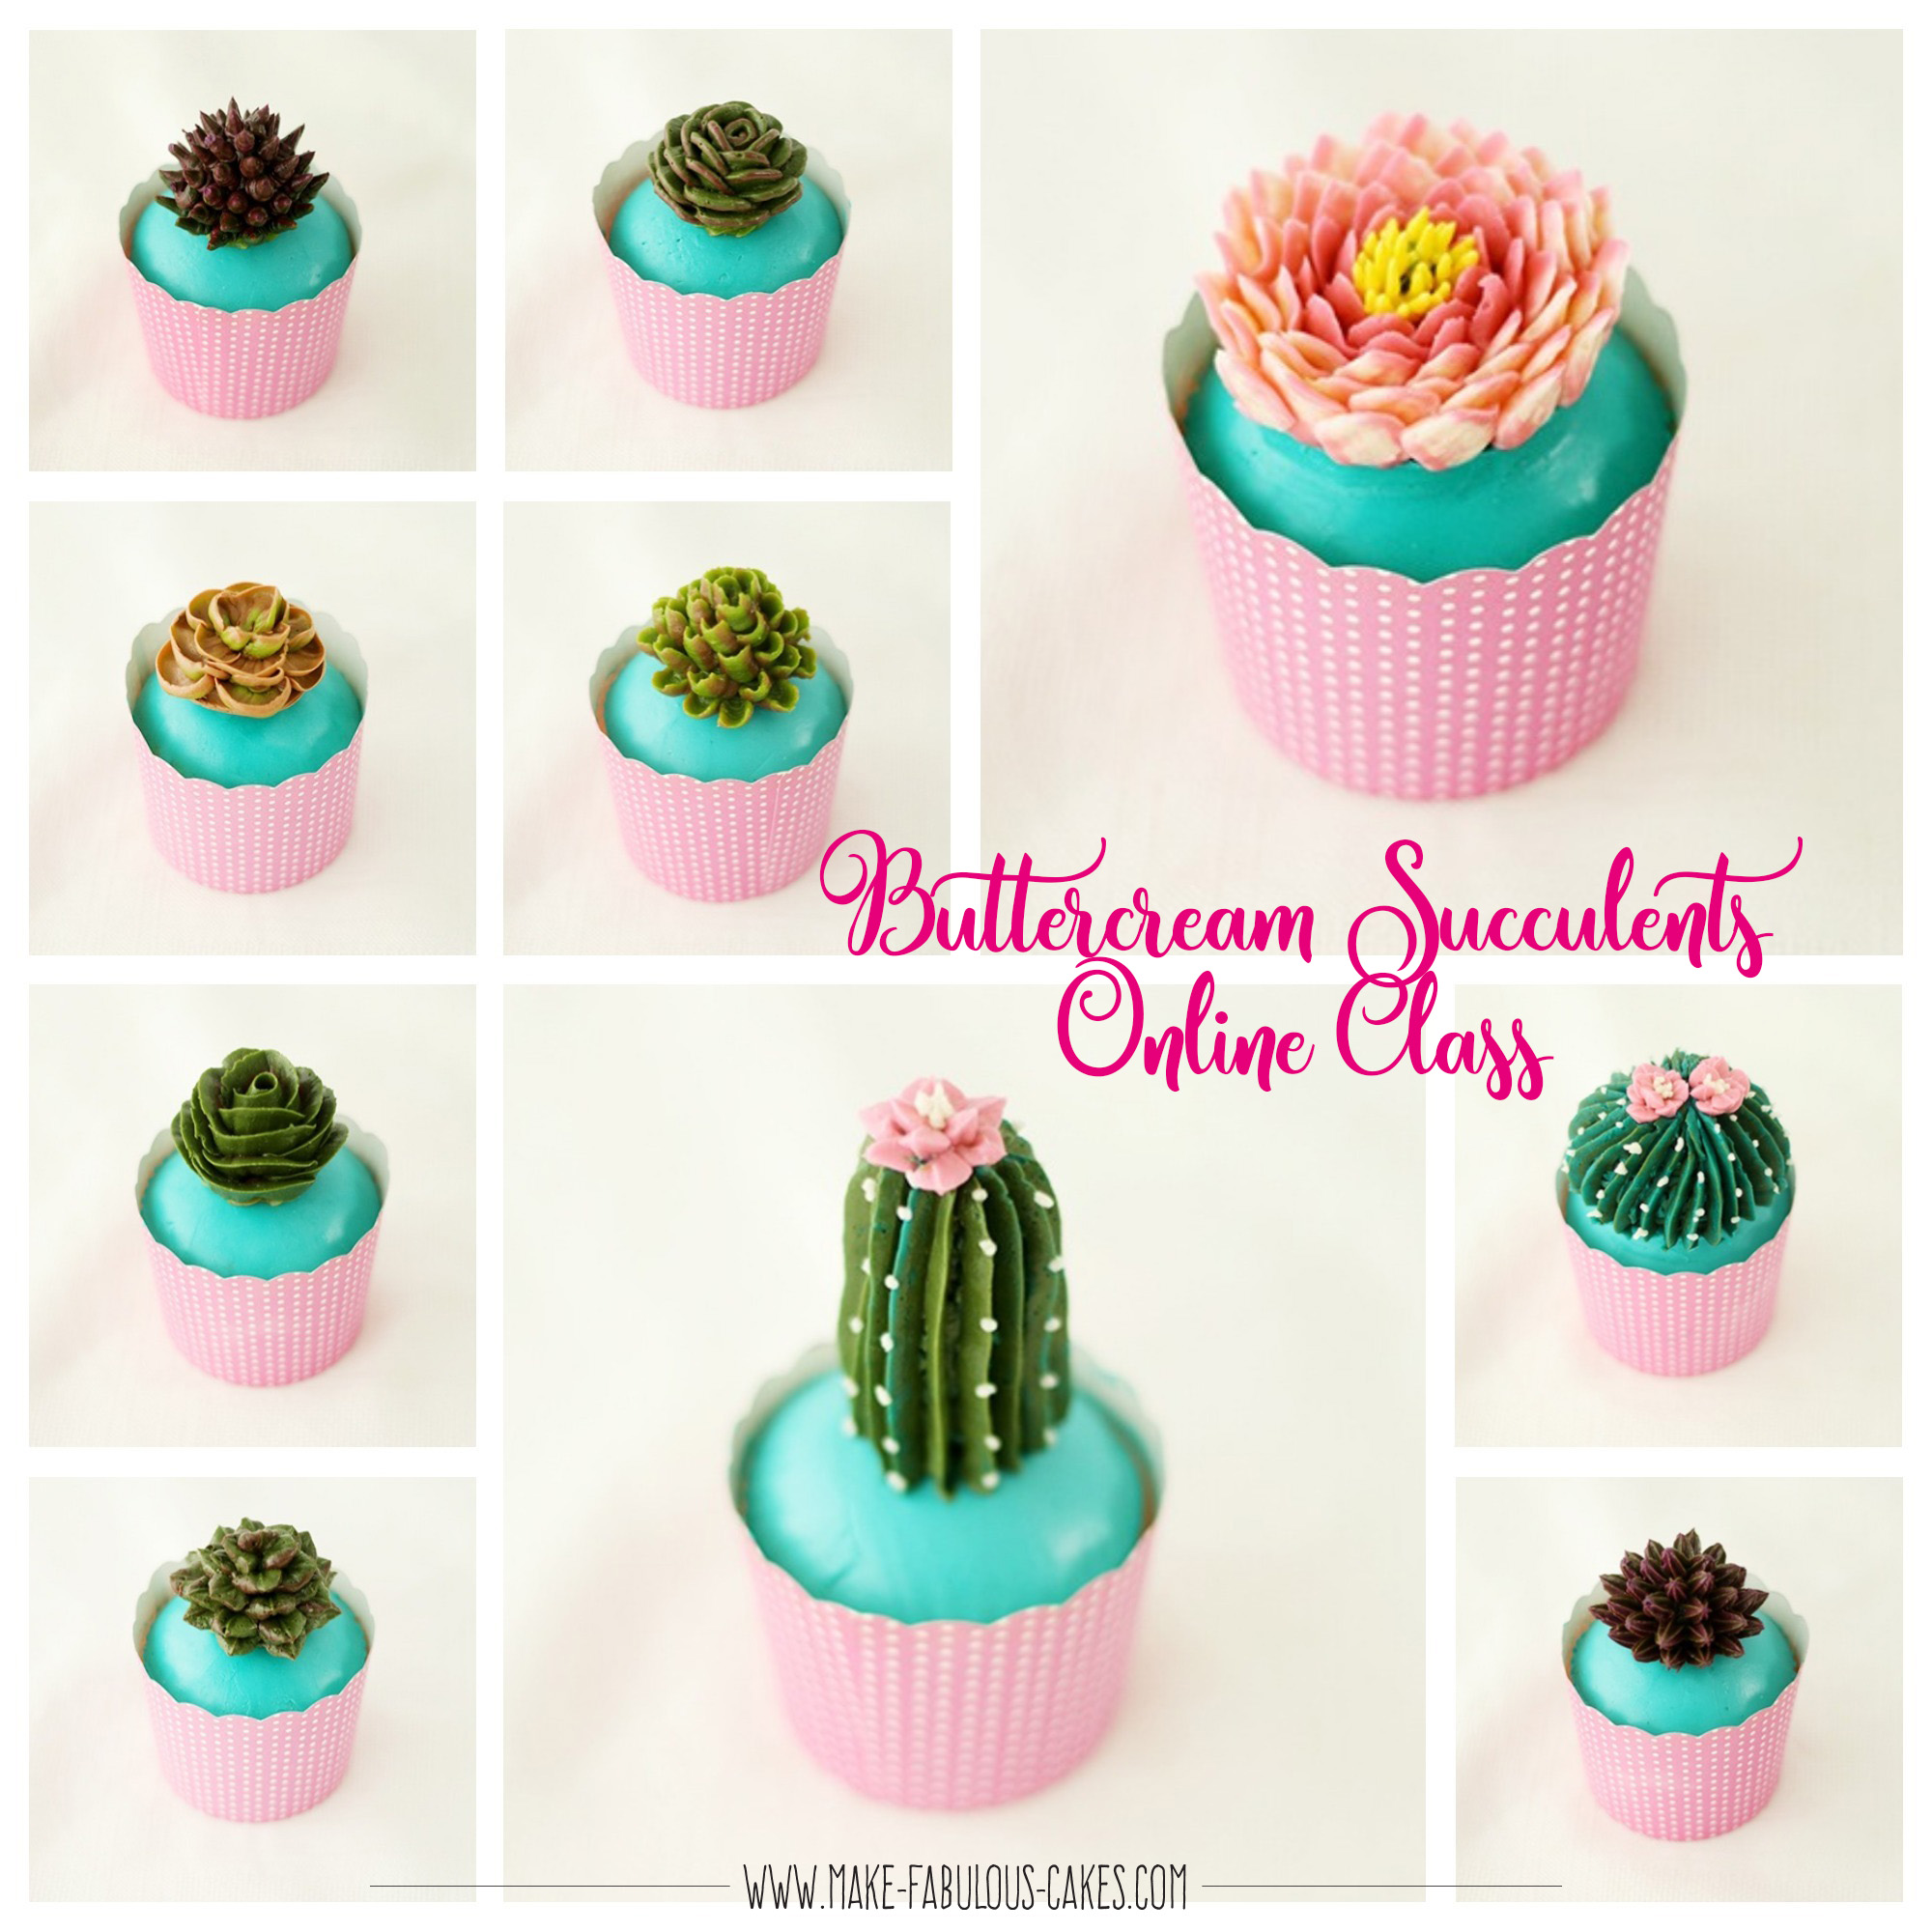 edible succulents